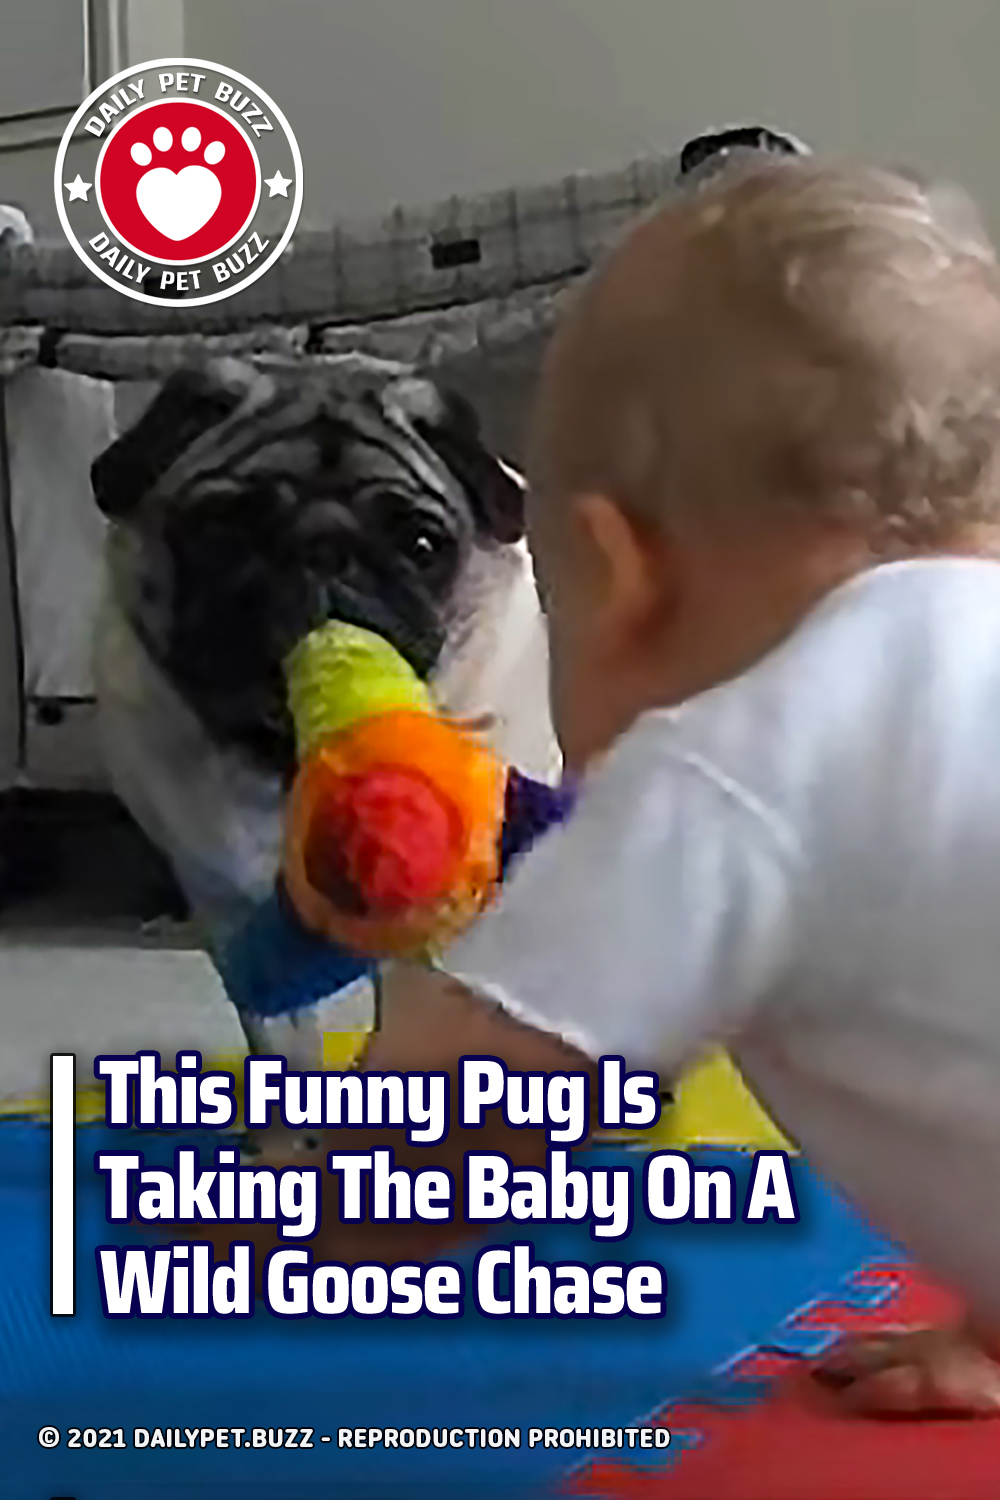 This Funny Pug Is Taking The Baby On A Wild Goose Chase